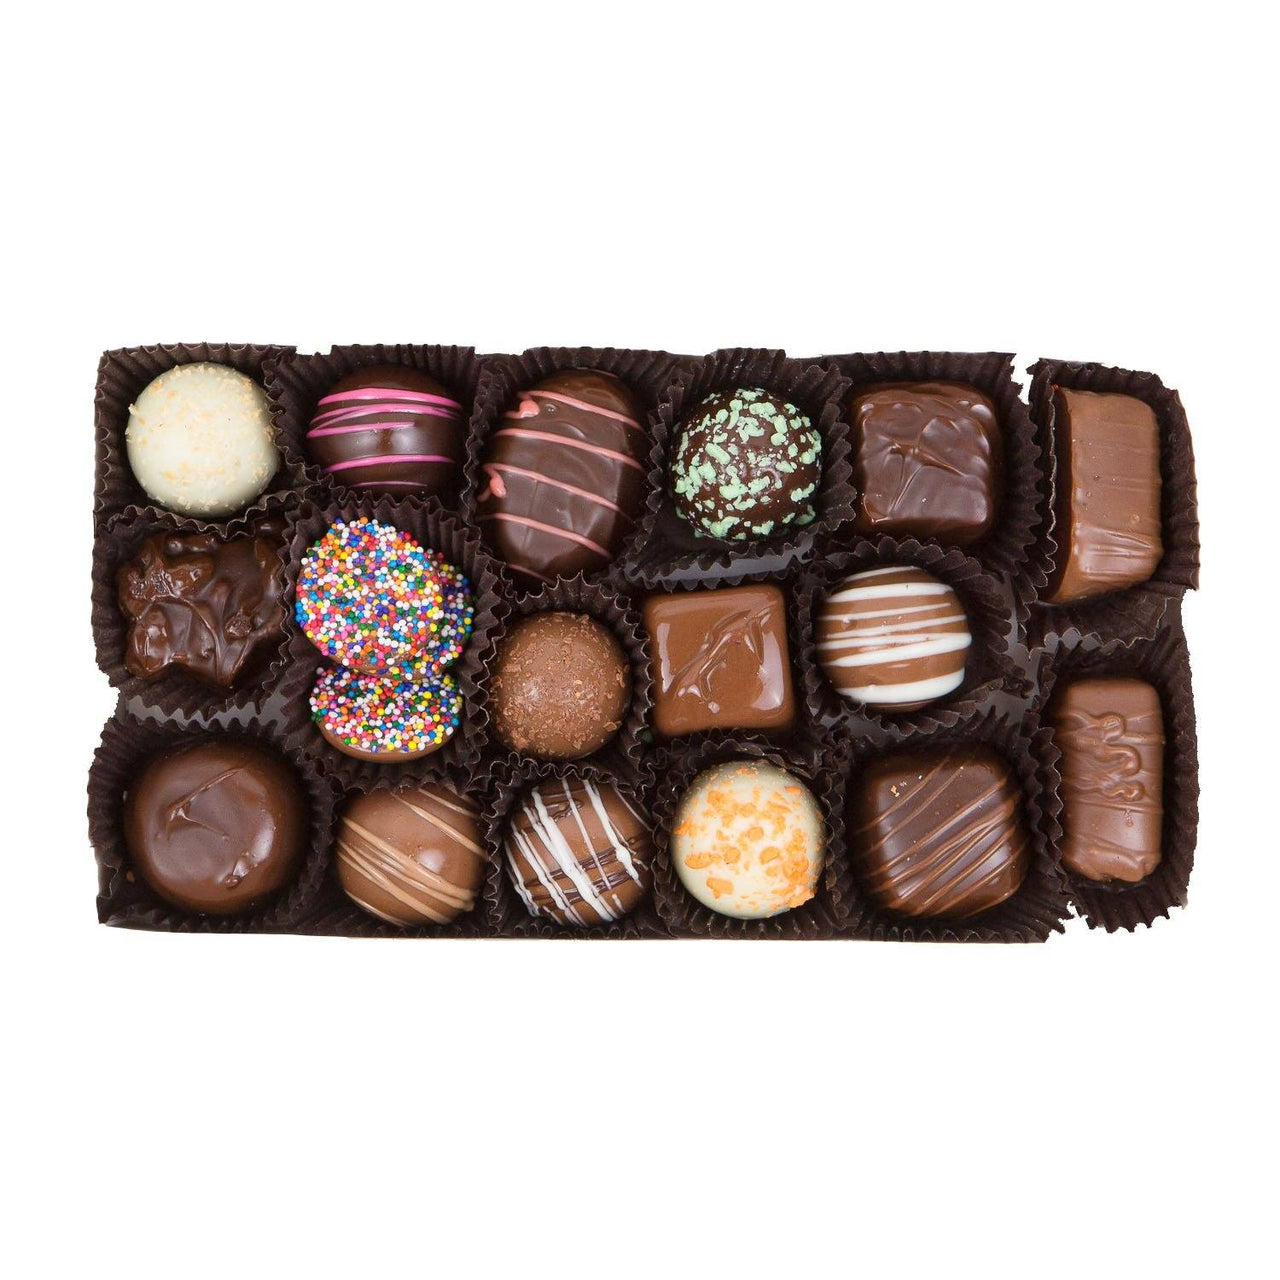 Gifts for Mom - Assorted Chocolate Gift Box - Jackie's Chocolate (1487122825251)